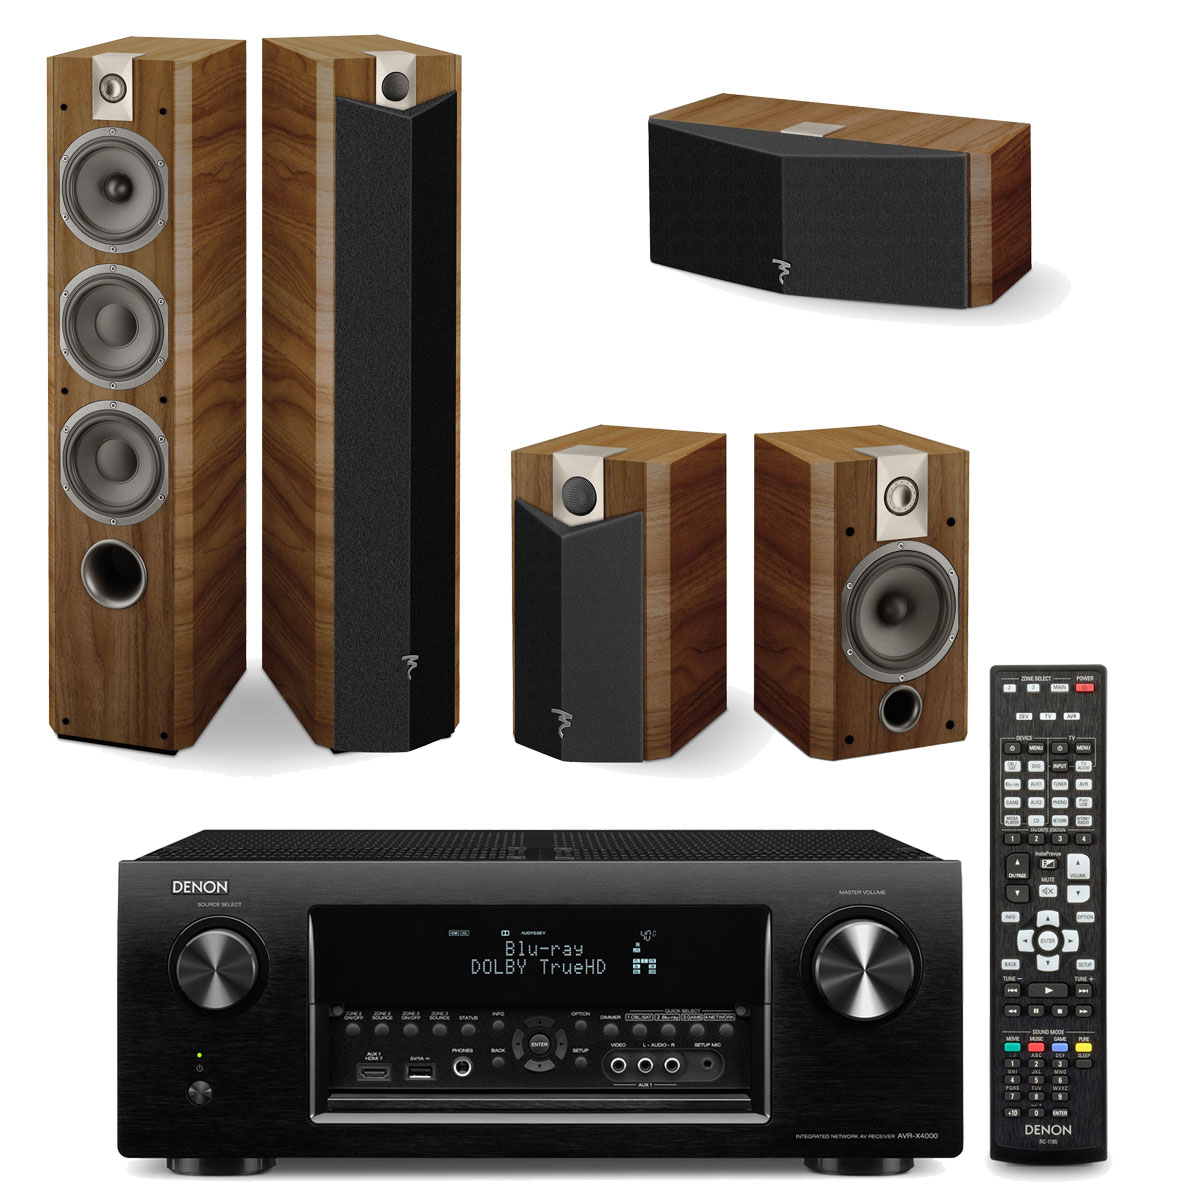 denon avr x4000 noir focal chorus 726 v cigar focal chorus 705 v cigar focal chorus cc 700. Black Bedroom Furniture Sets. Home Design Ideas